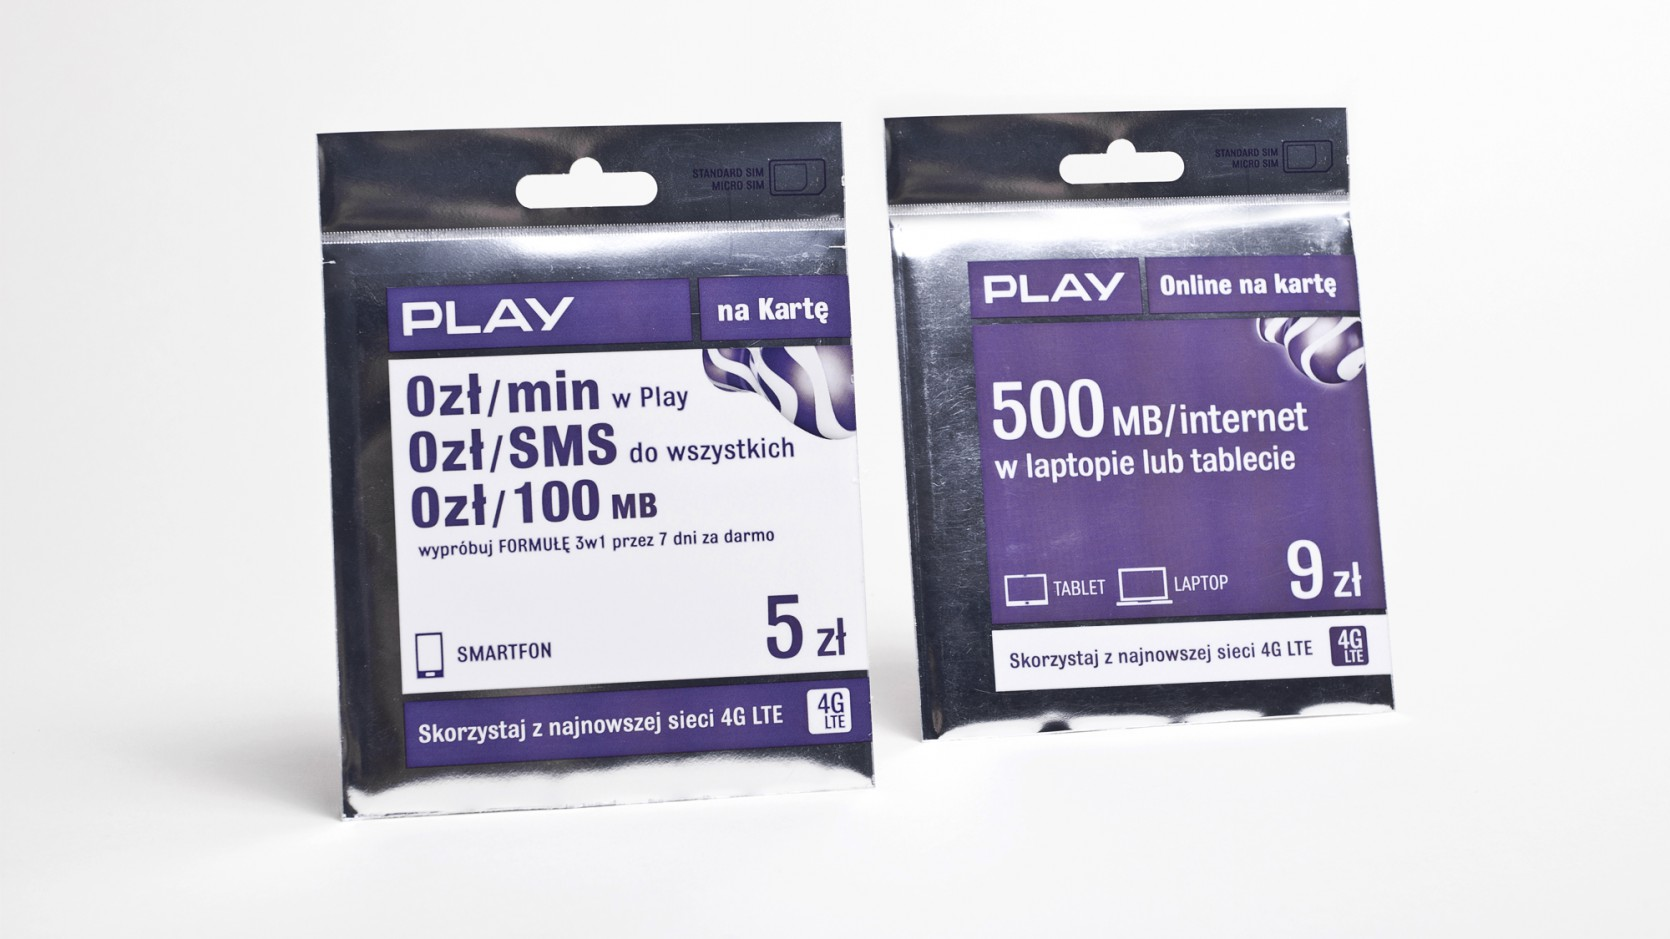 play na karte Innovative packaging system for mobile phone carrier service